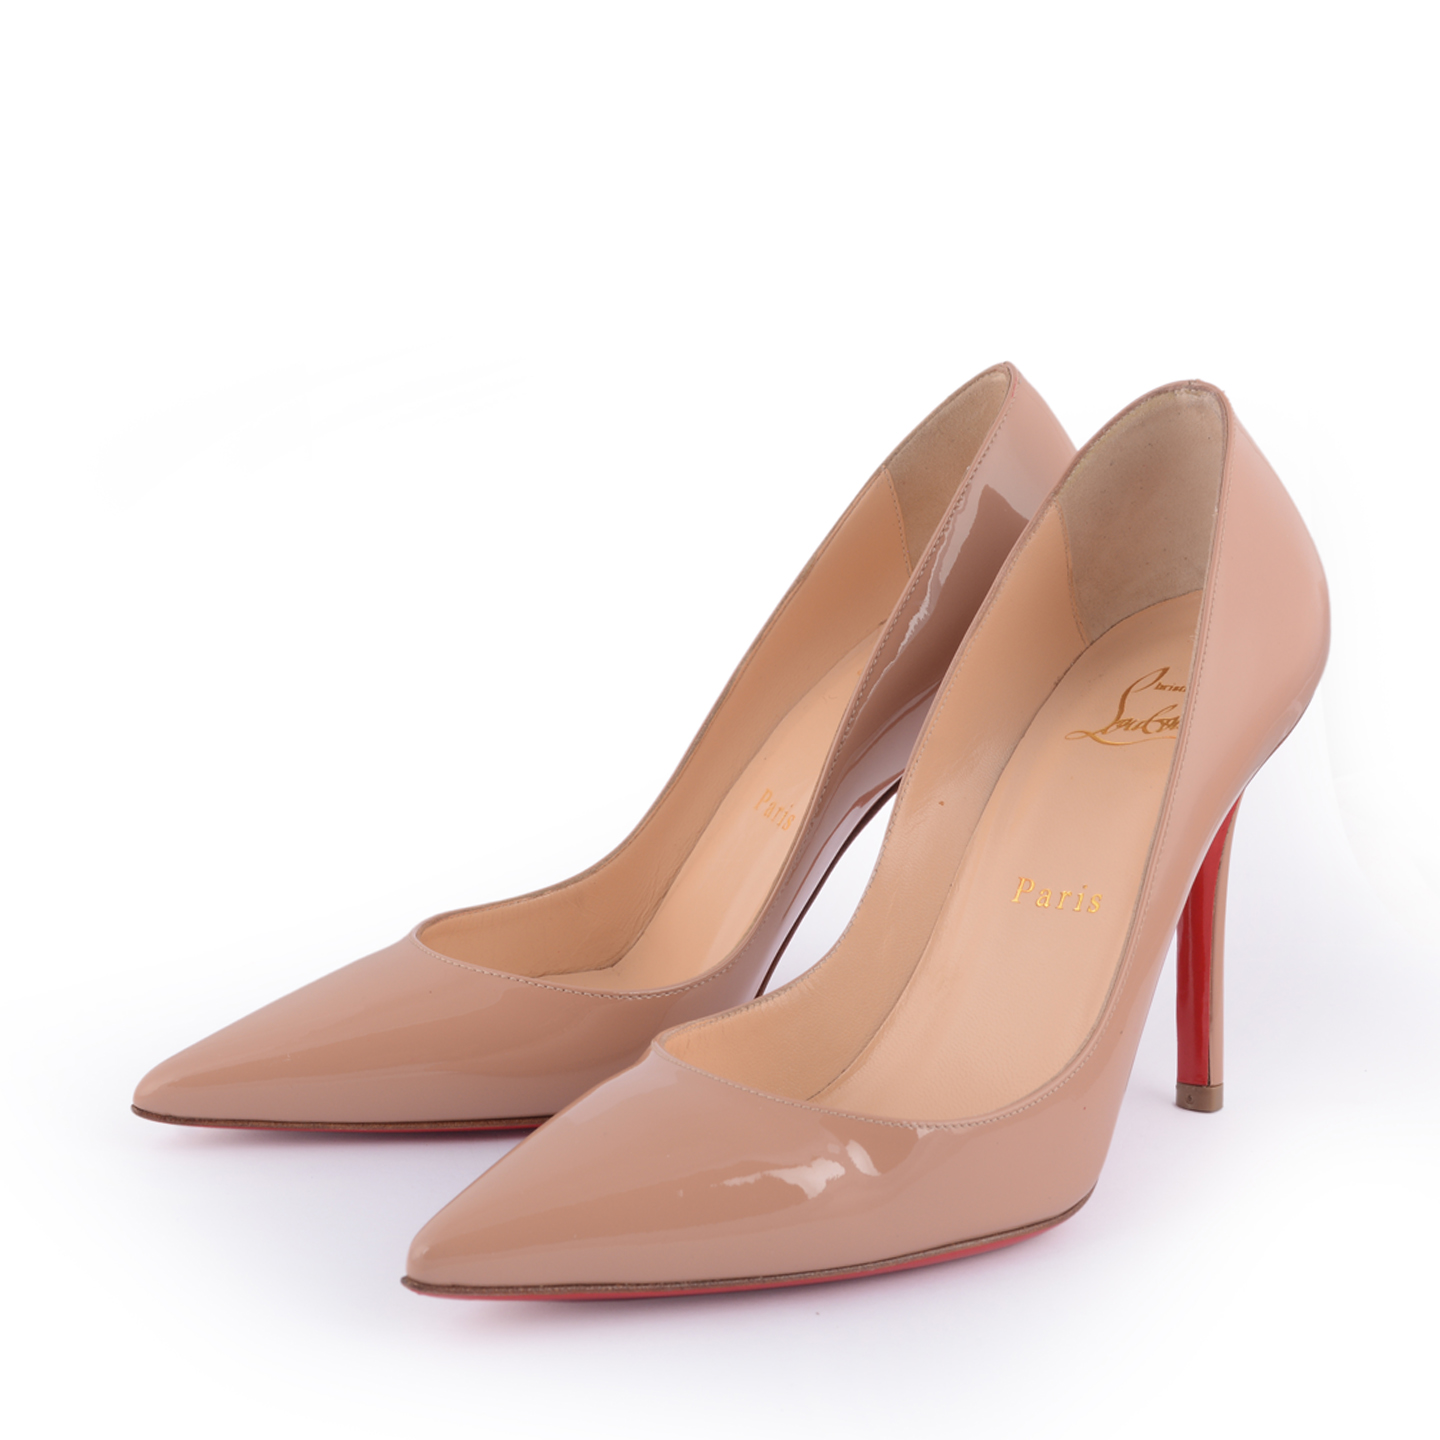 huge discount a8c87 0e2ed Christian Louboutin Apostrophy Nude Pumps 100 mm Size 36 - LabelCentric